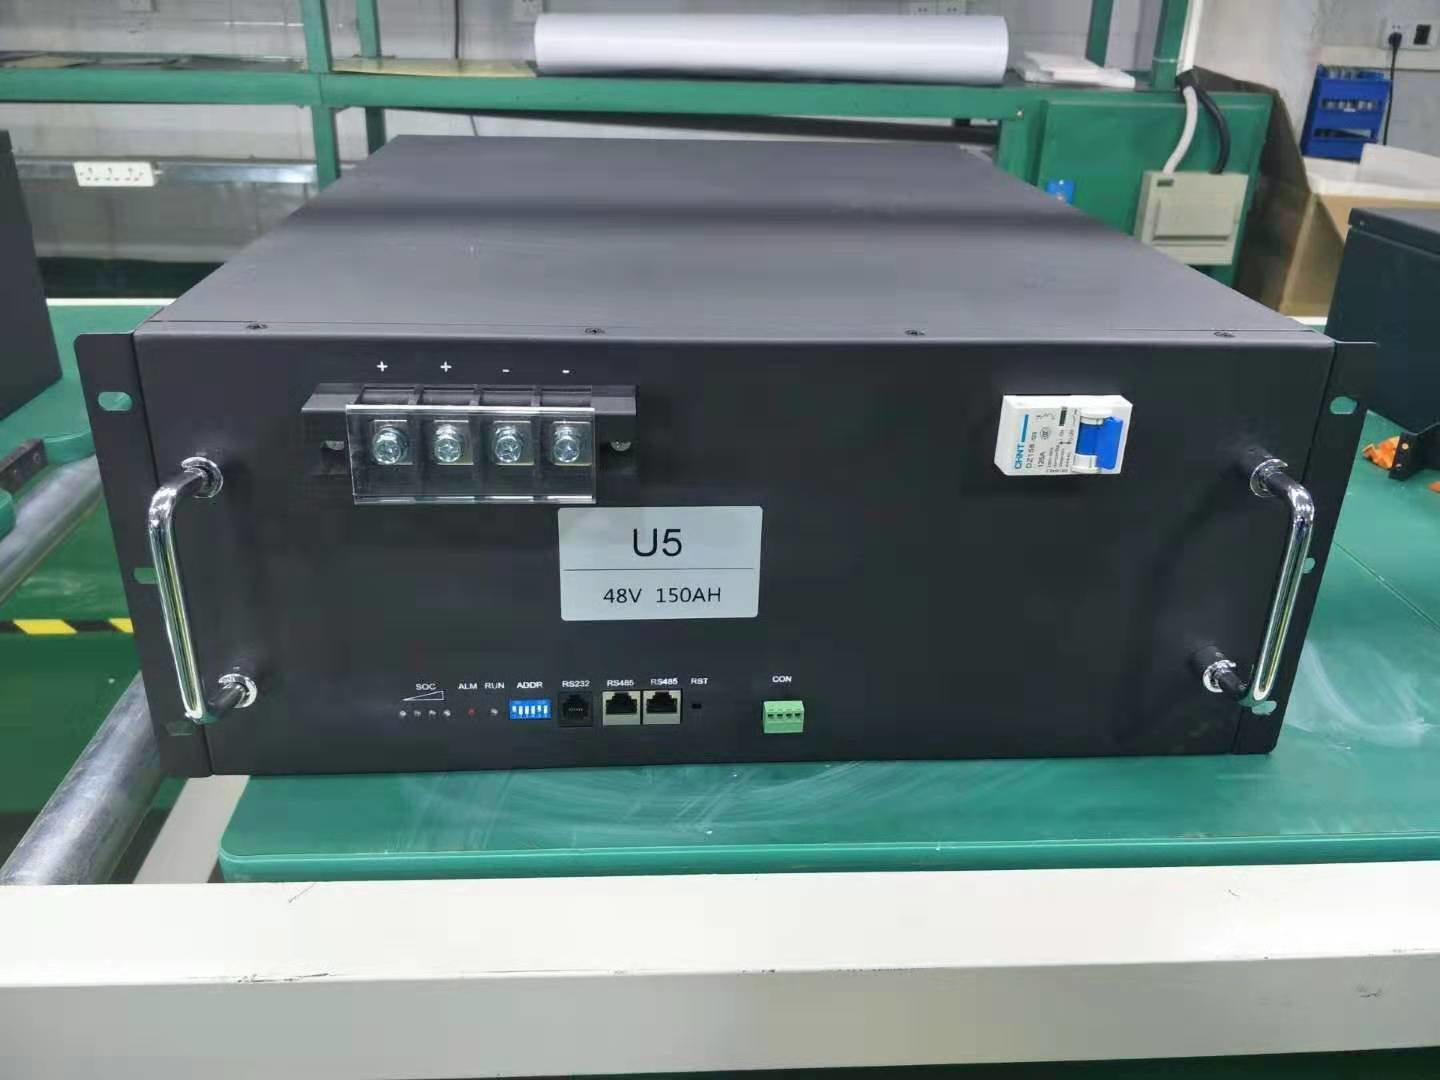 48v 150ah Lifepo4 Battery With Bms Factory Price Lithium Ion Battery For House Bank In A Yacht Rv Marine